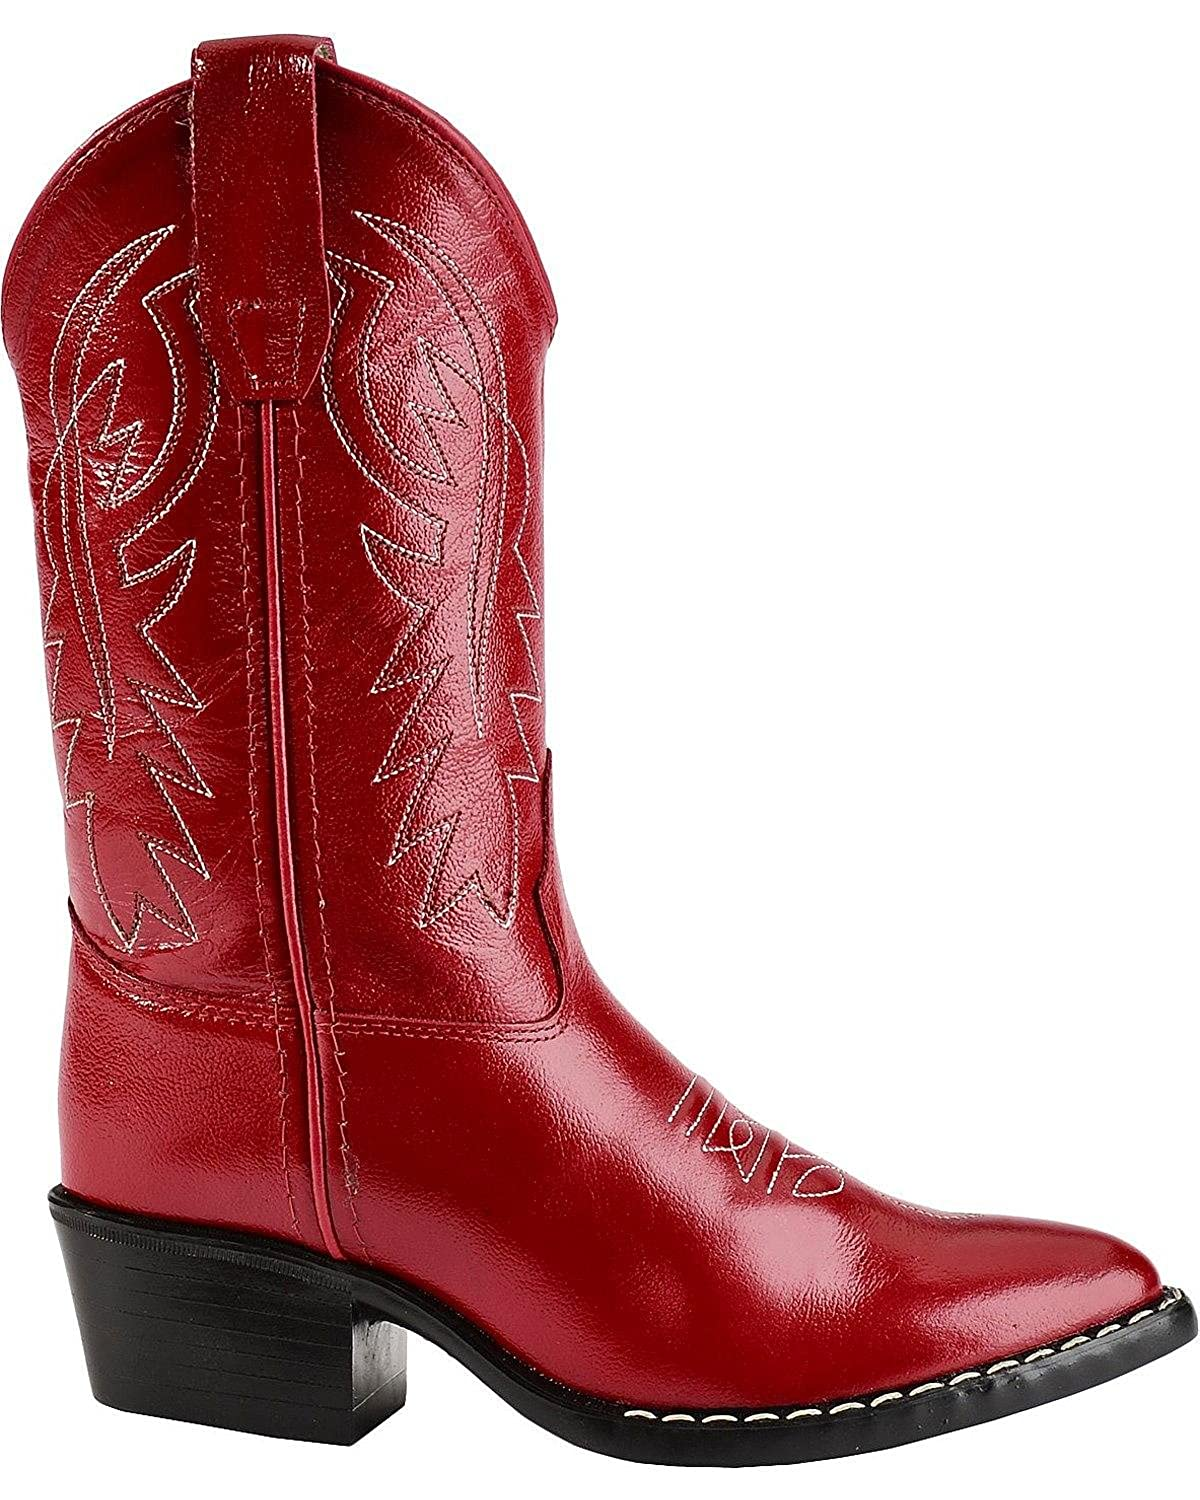 US 8116 M Old West Girls Leather Cowgirl Boot Red 13.5 D